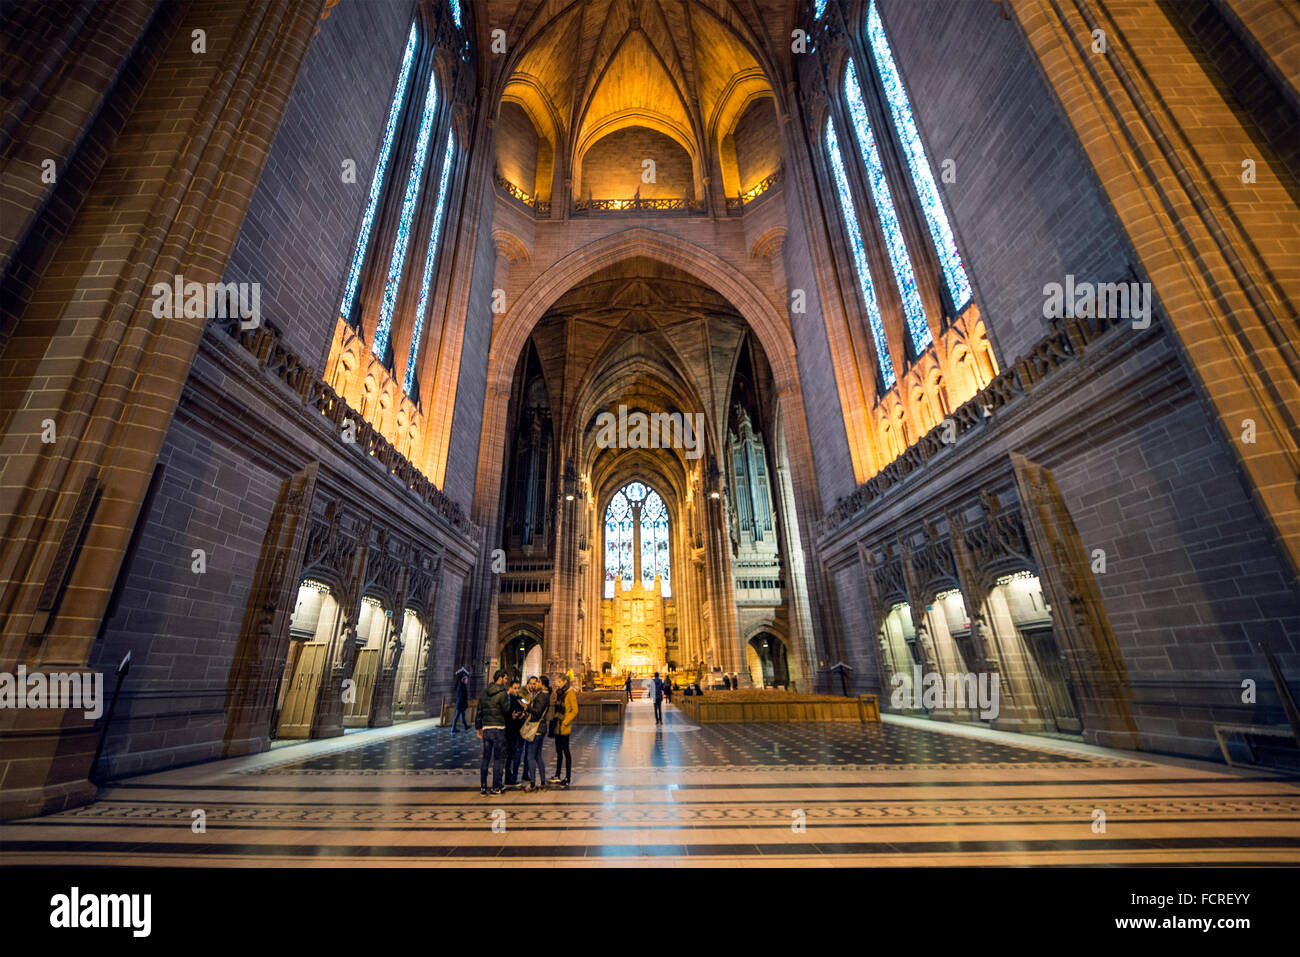 Liverpool Anglican Cathedral - Stock Image